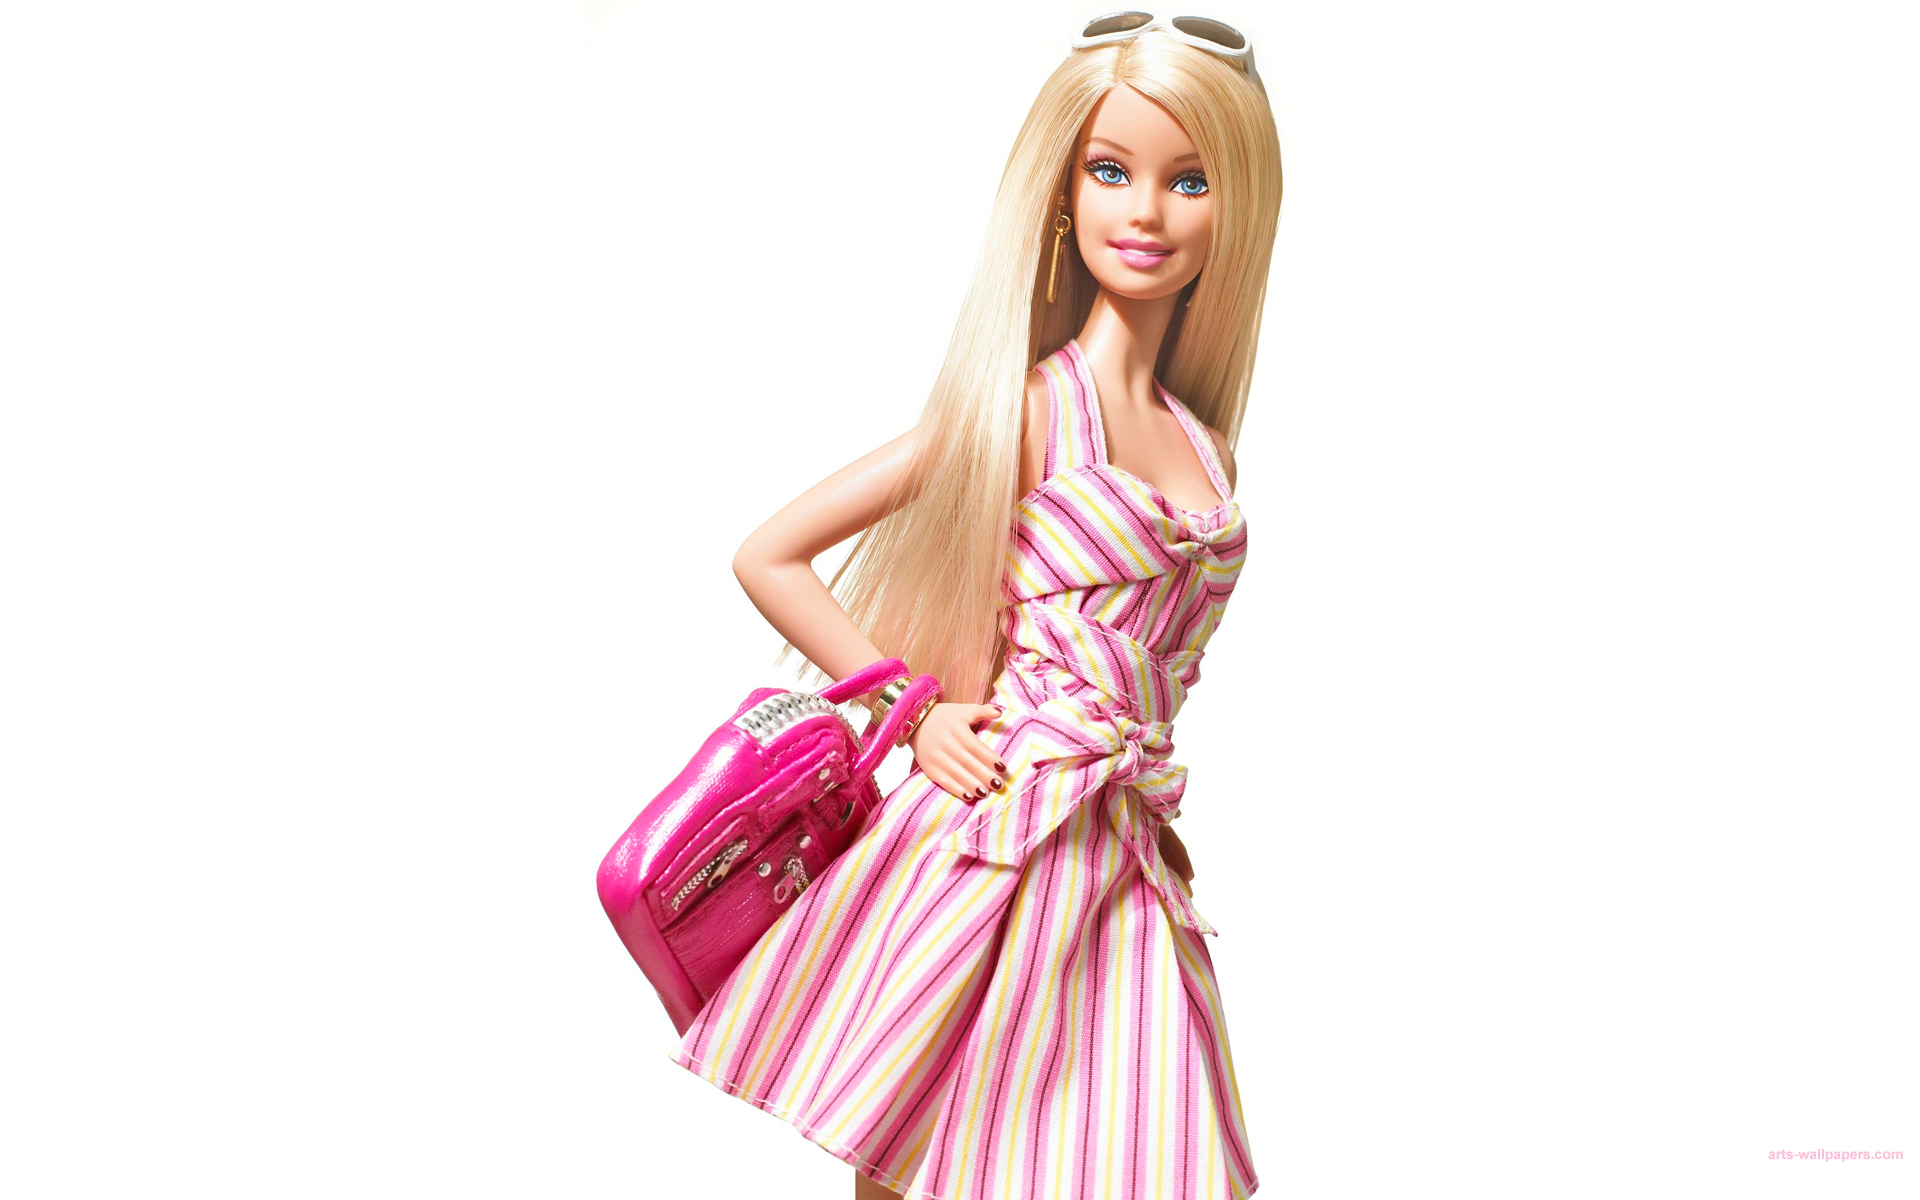 Barbie Wallpaper HD Widescreen 1080p Barbie Wallpapers 1920x1200